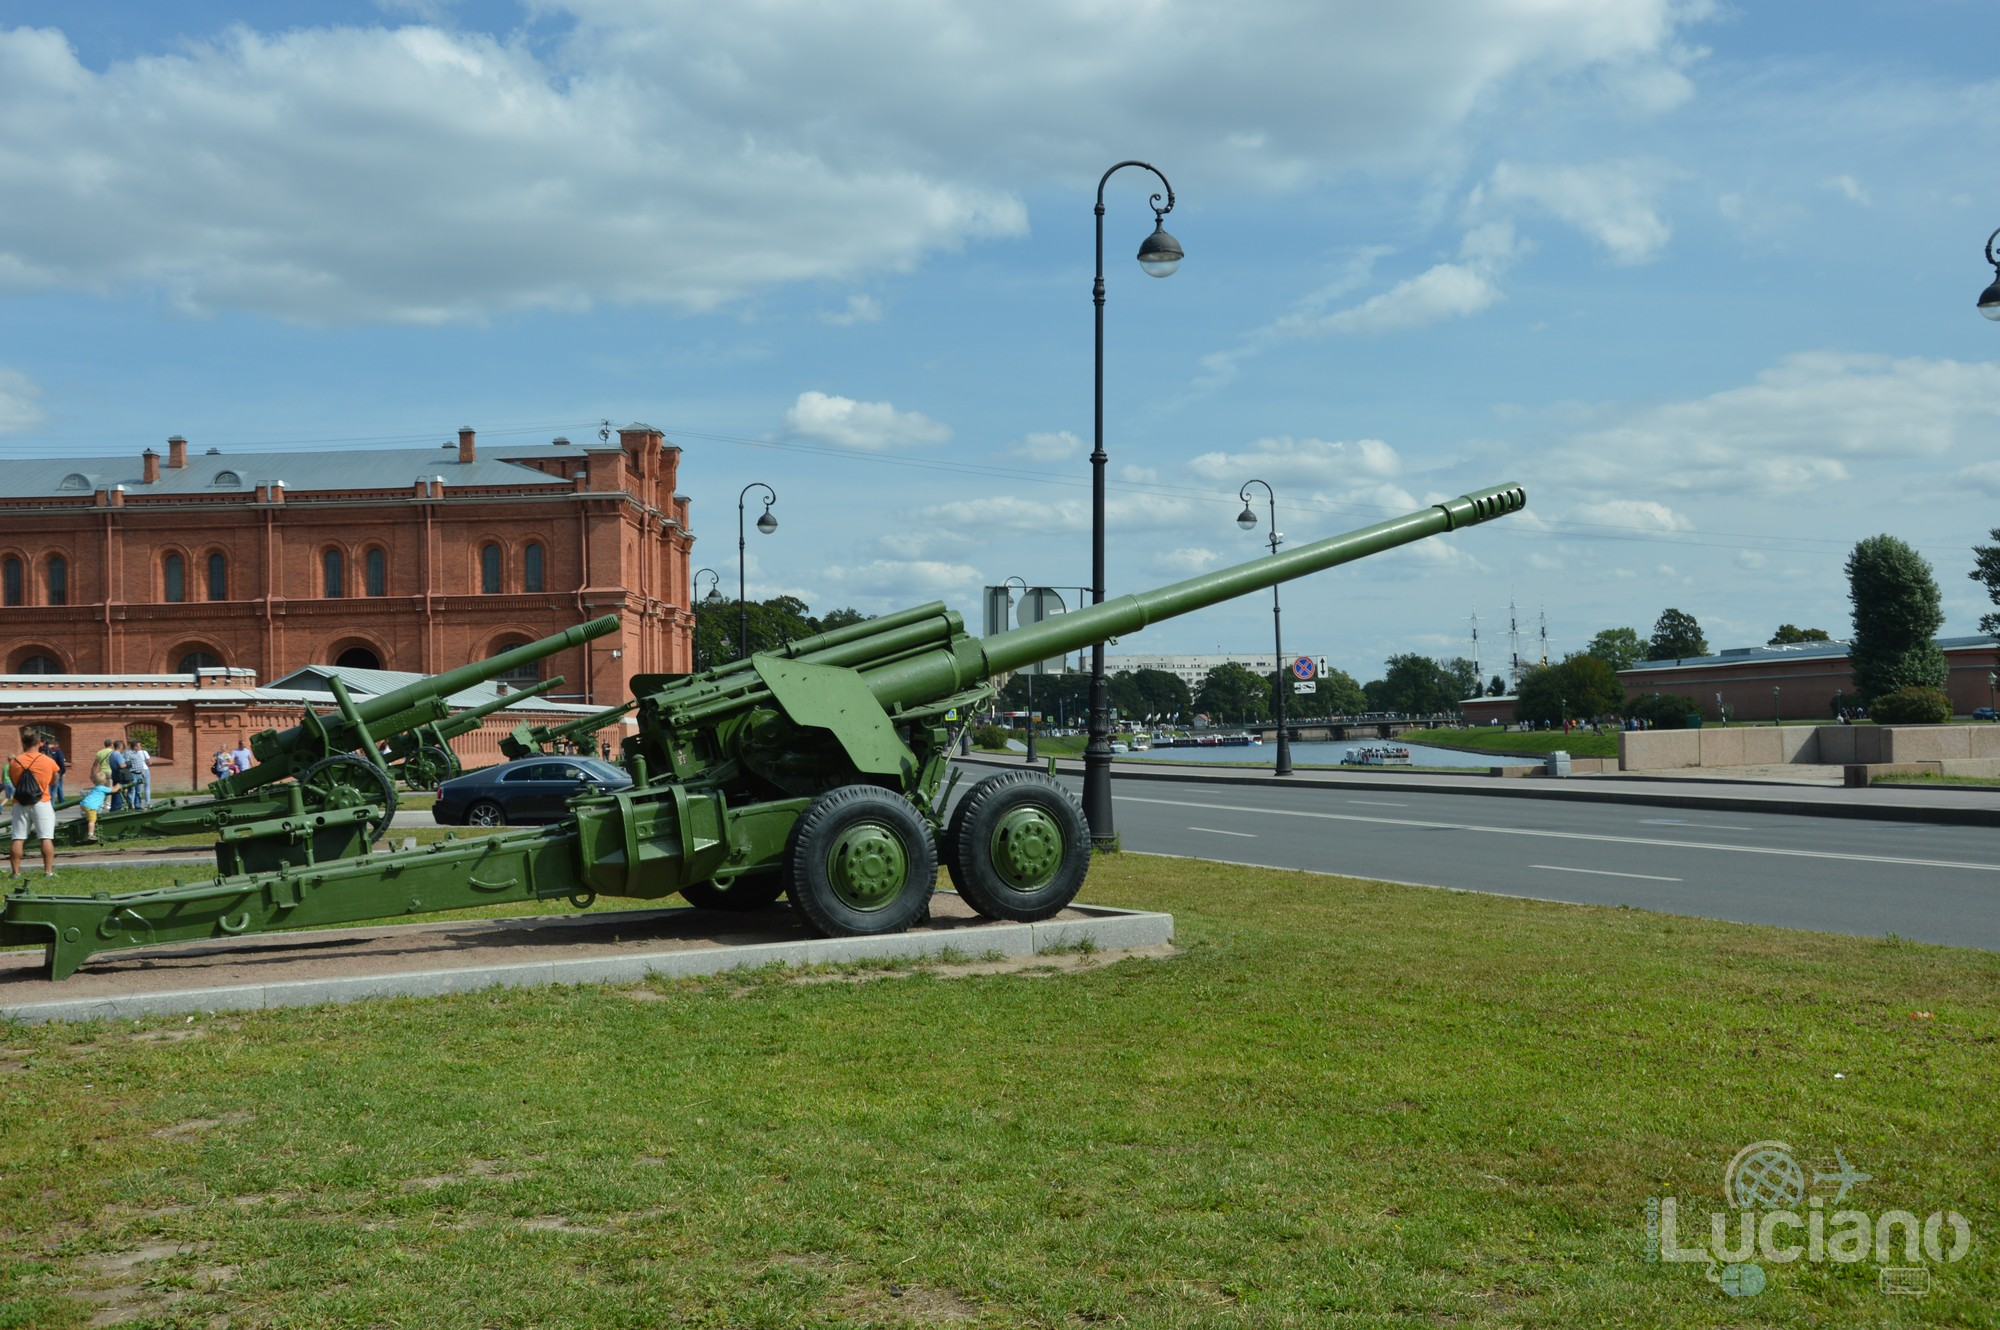 Military-Historical-Museum-of-Artillery-Engineer-and-Signal-Corps-St-Petersburg-Russia-Luciano-Blancato- (6)